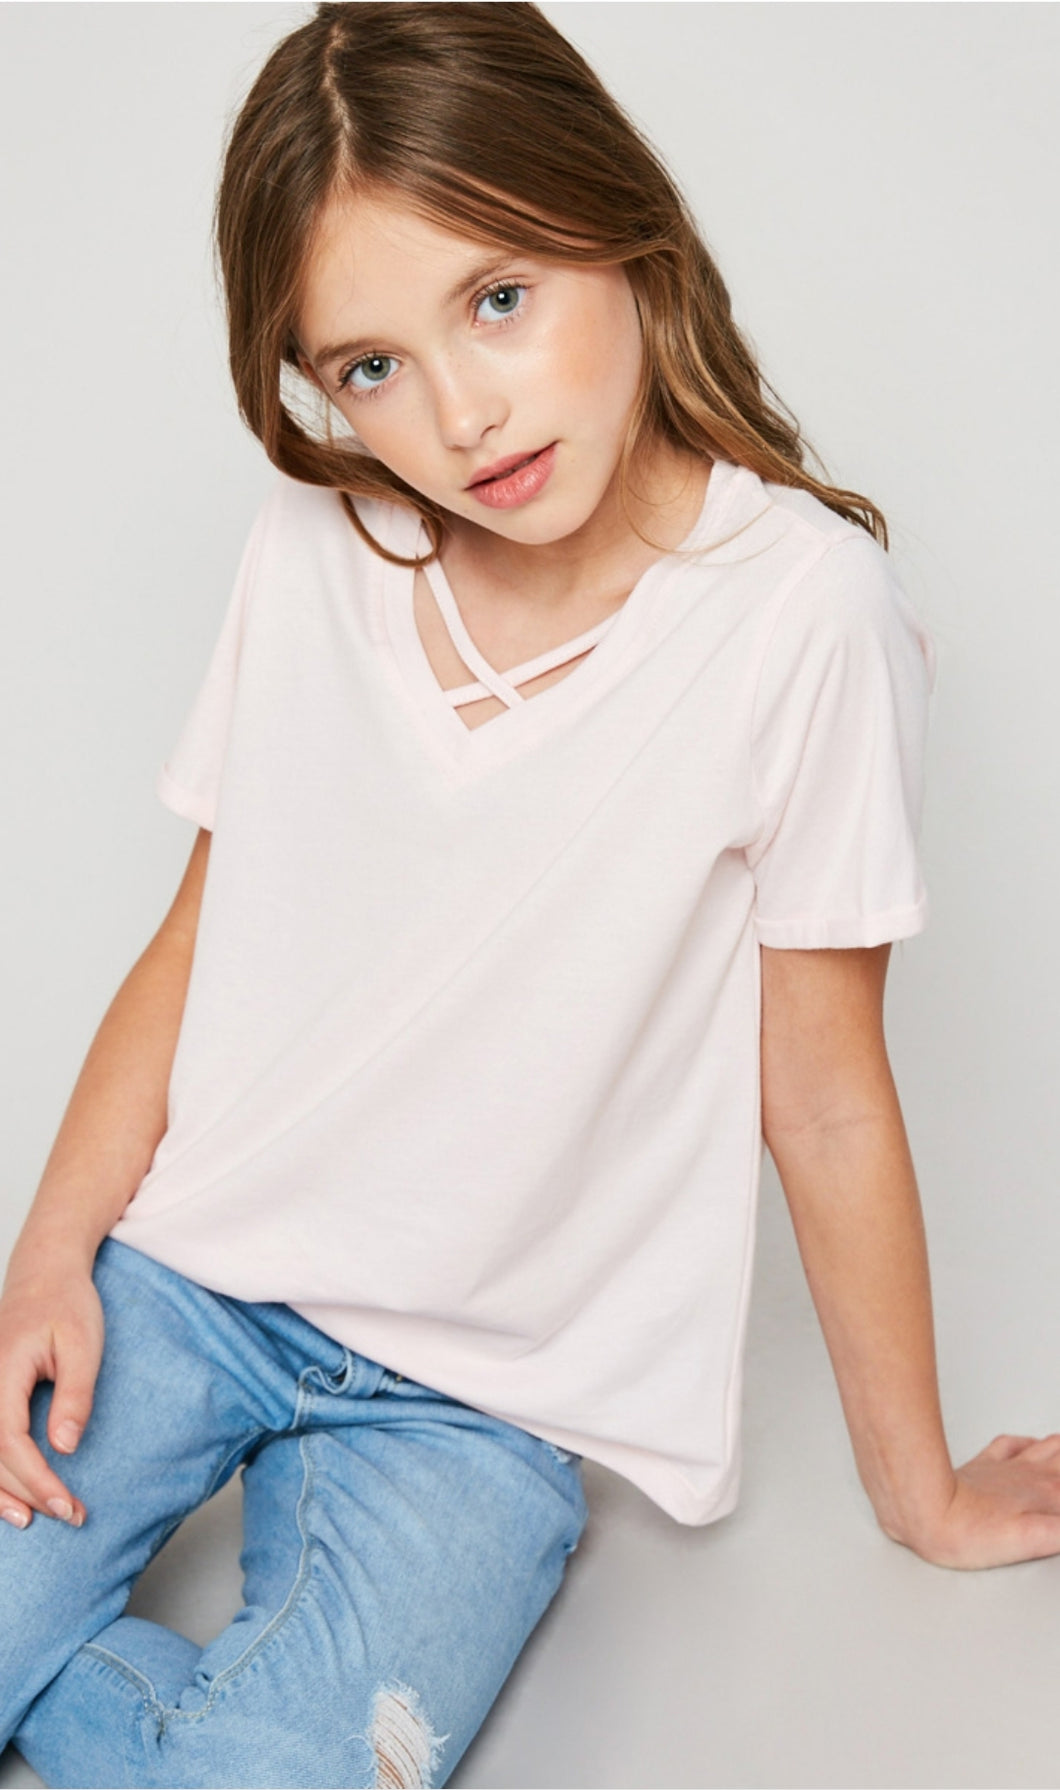 Hayden Girls Pale Pink V-Neck Criss-Cross Tee